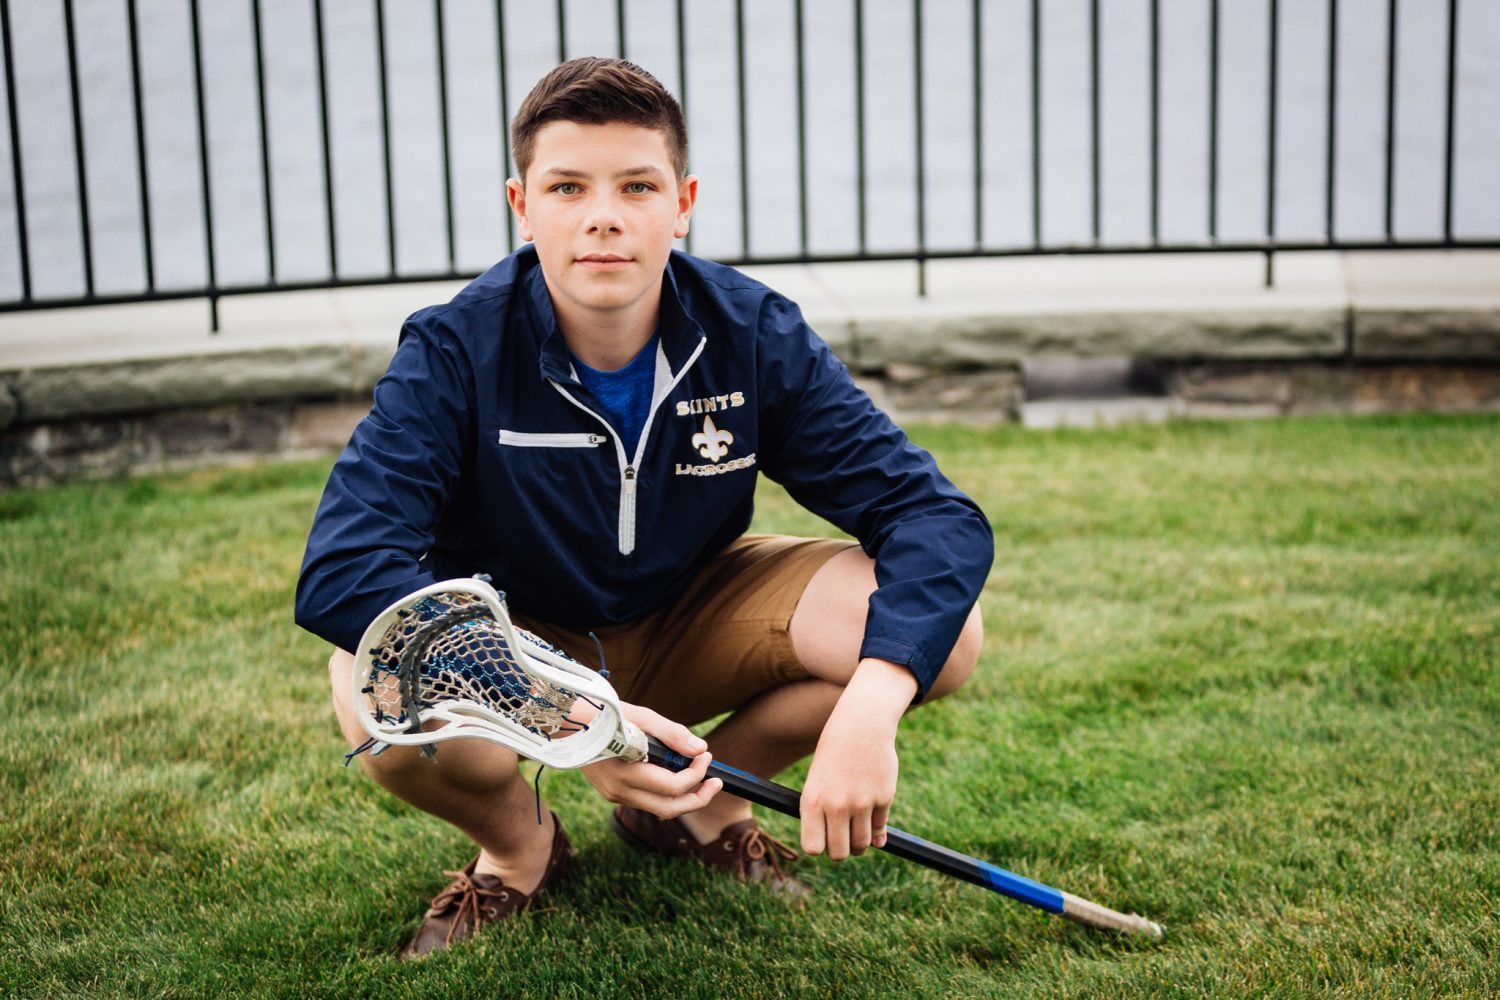 senior boy wearing blue windbreaker kneeling down holding lacrosse stick